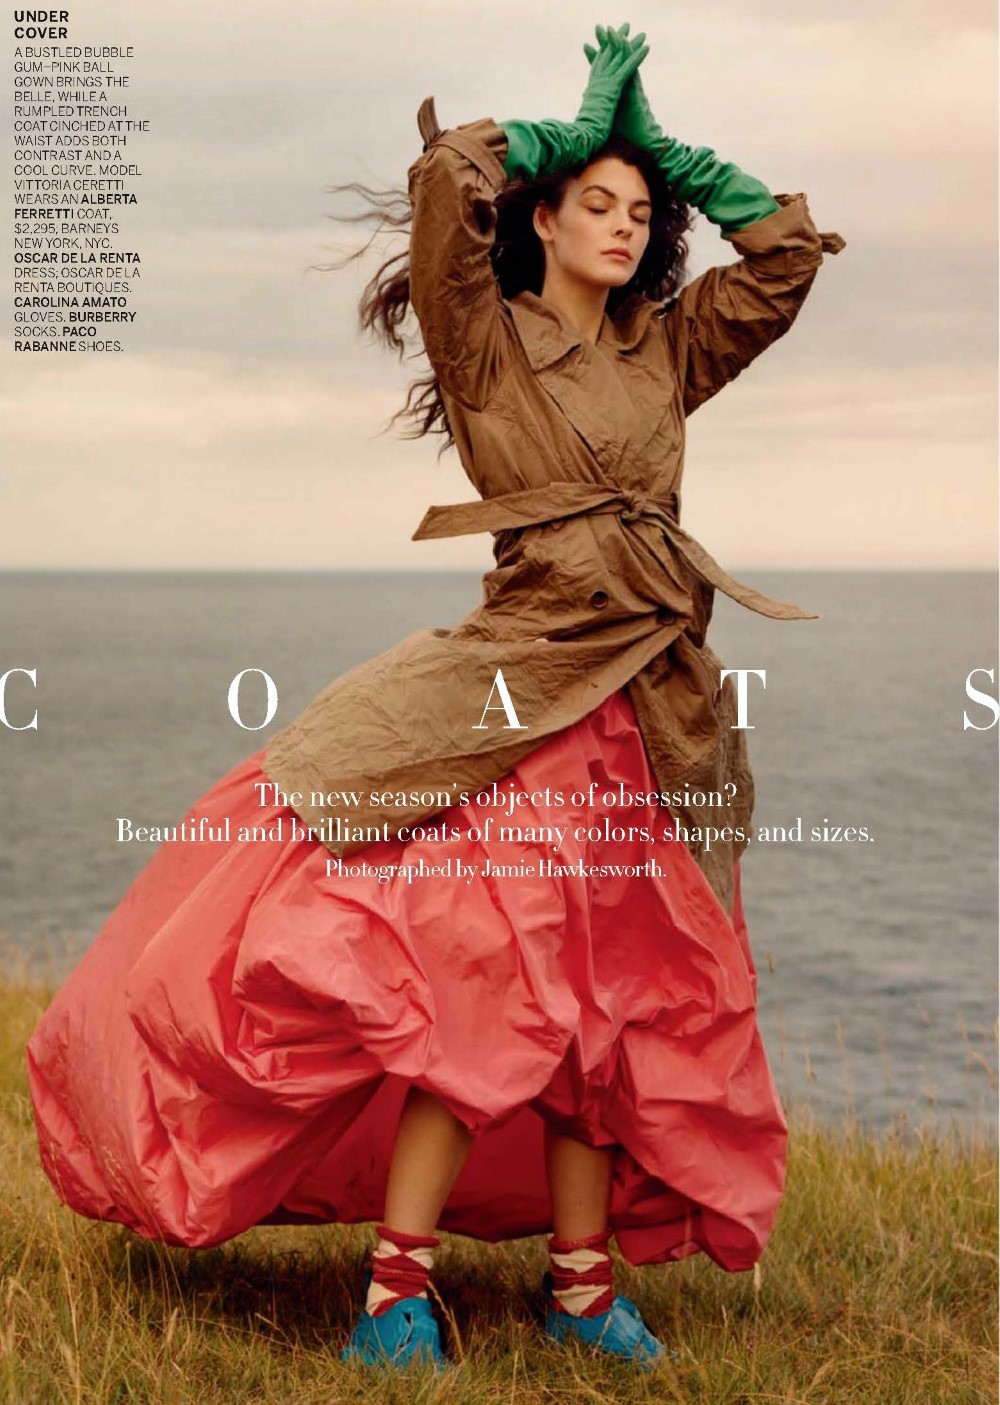 jamie-hawkesworth-vogue-us-oct-2017-fresh-coats- (4).jpg